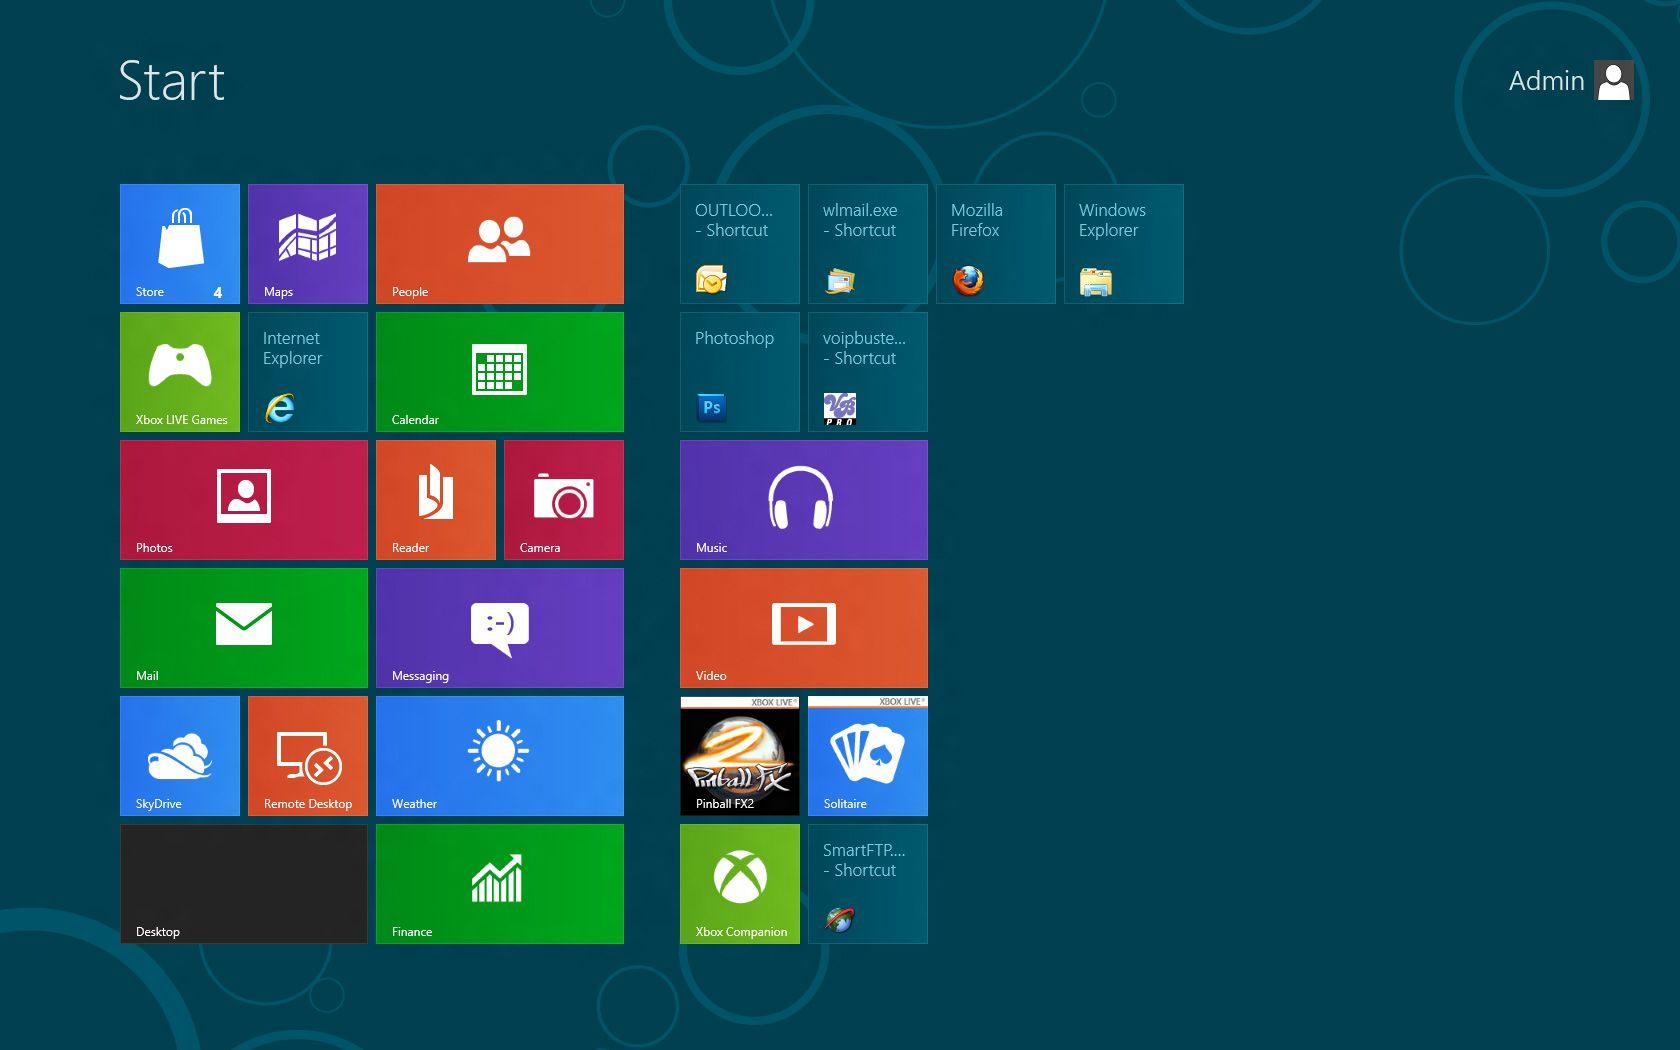 Video Review: The complete rundown of the Windows 8 Release Preview